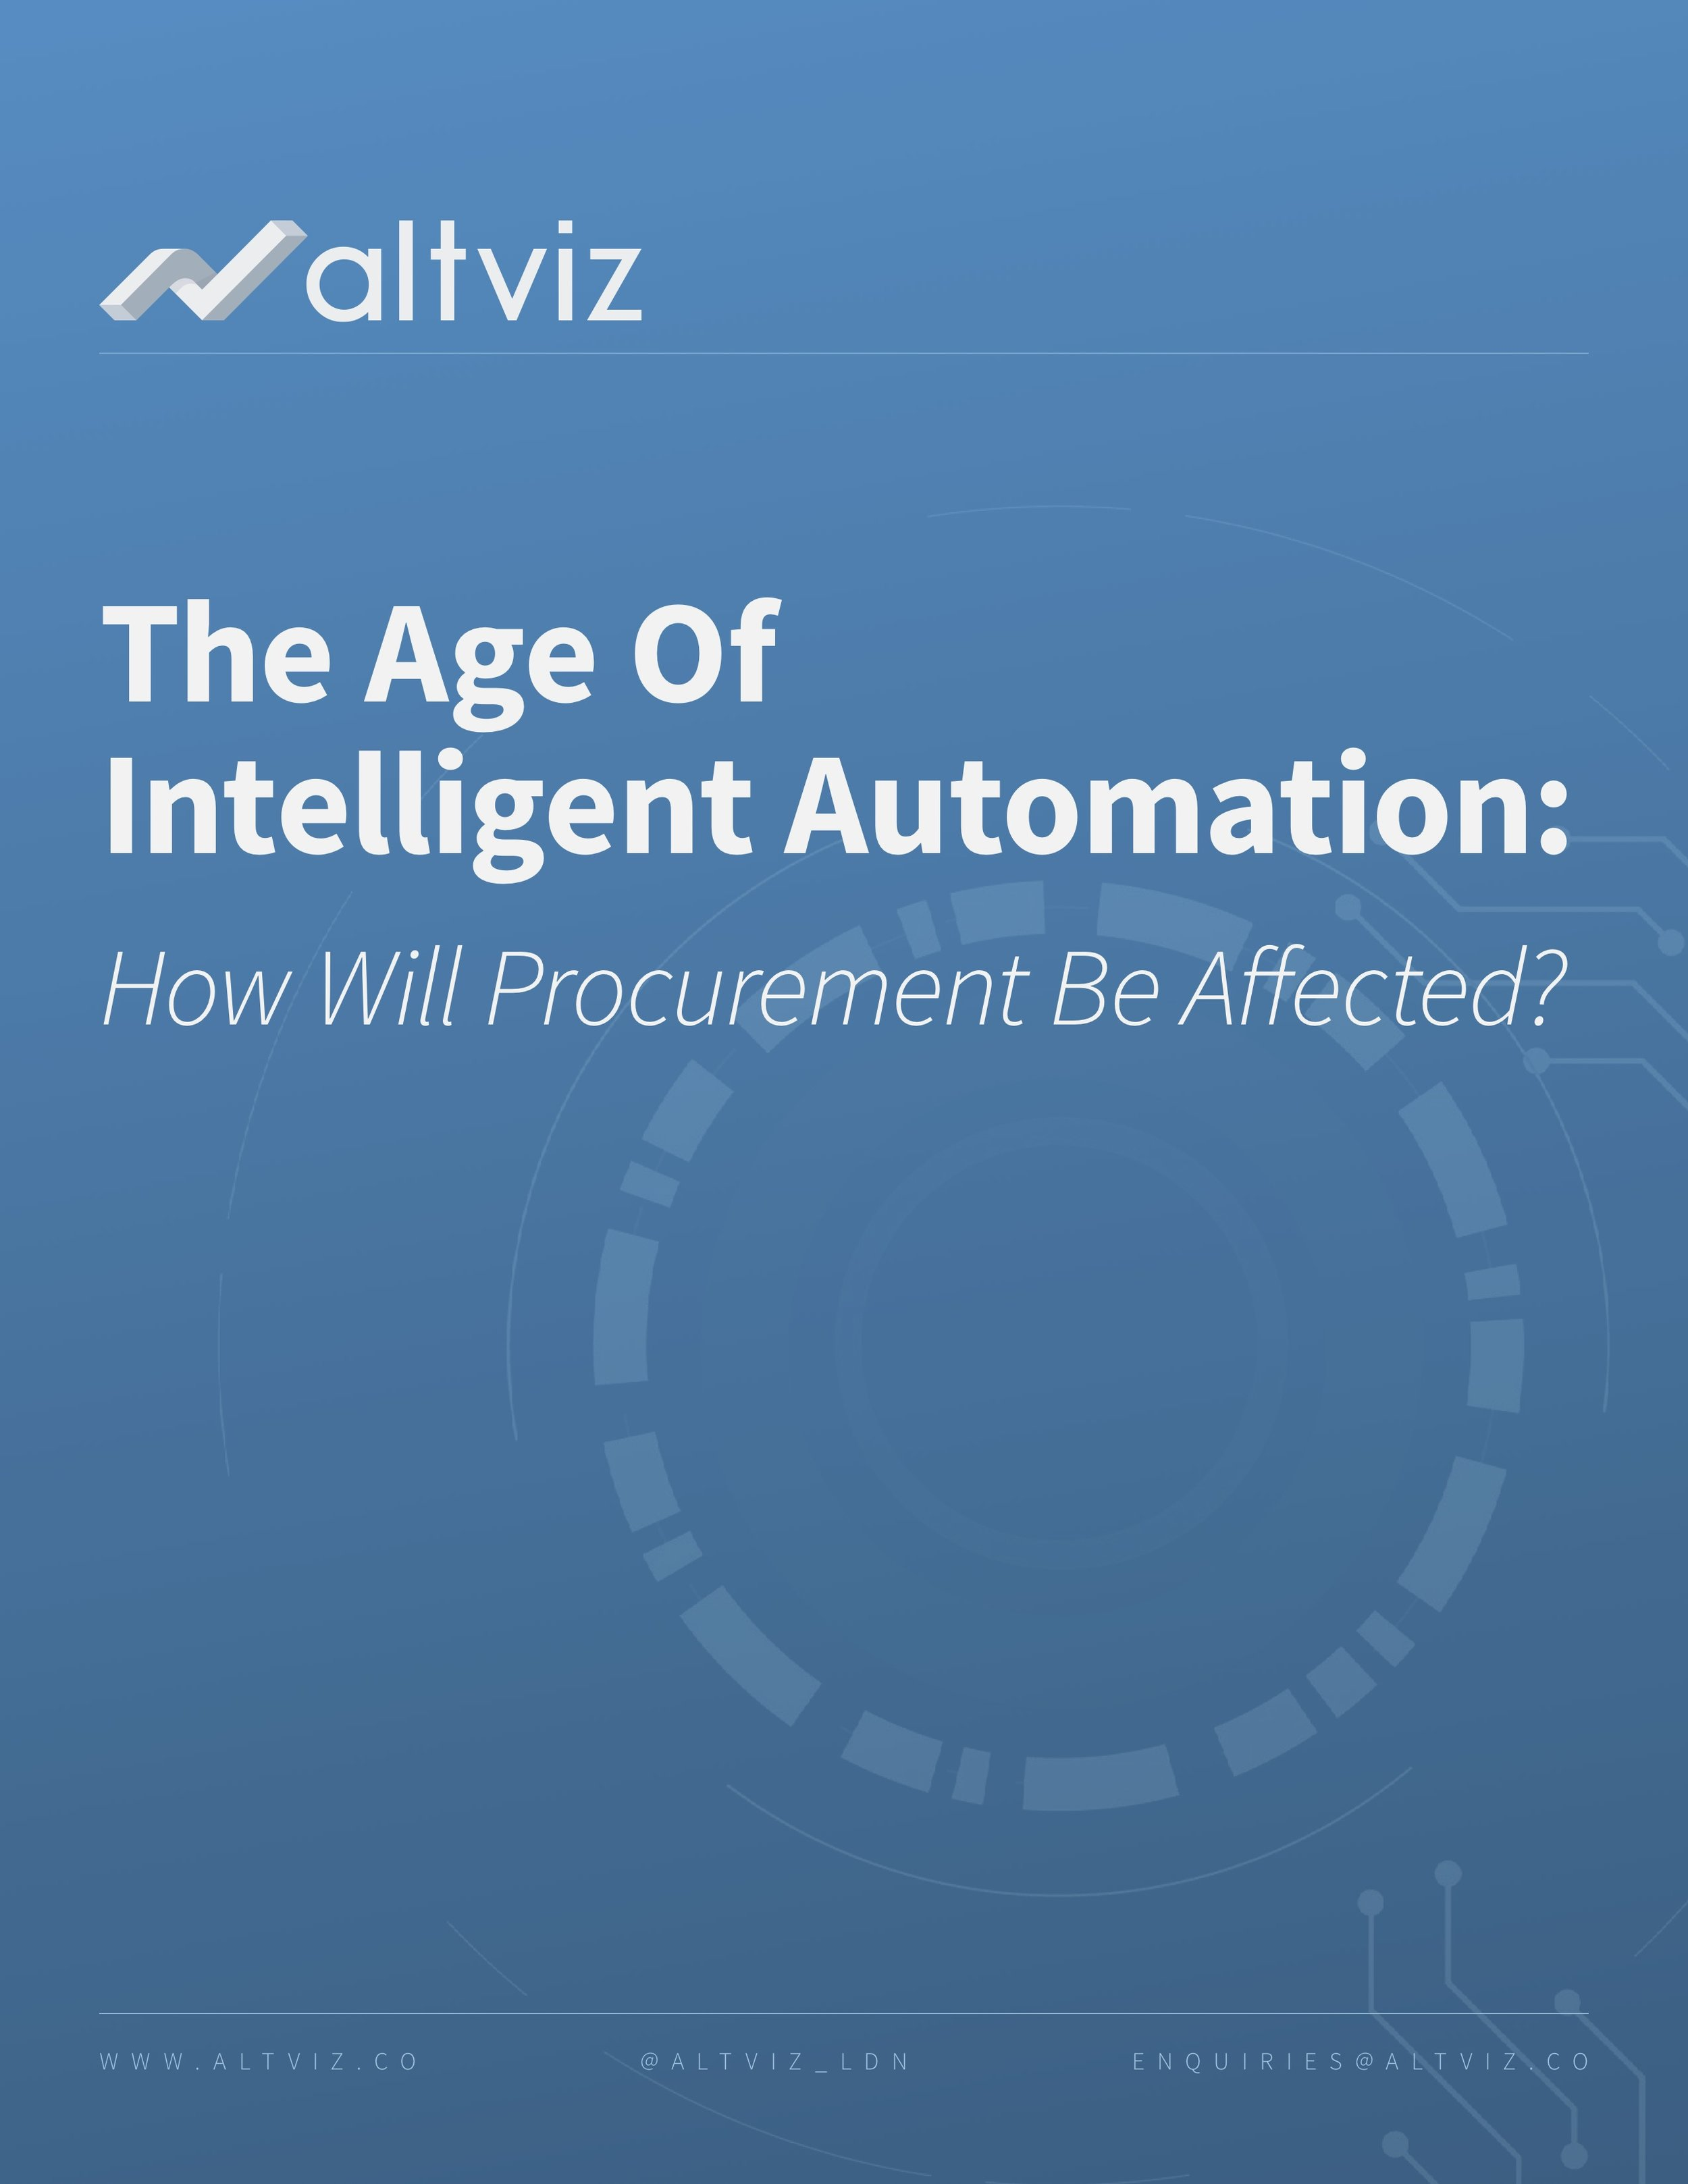 The Age Of Intelligent Automation - How Will Procurement Be Affected?